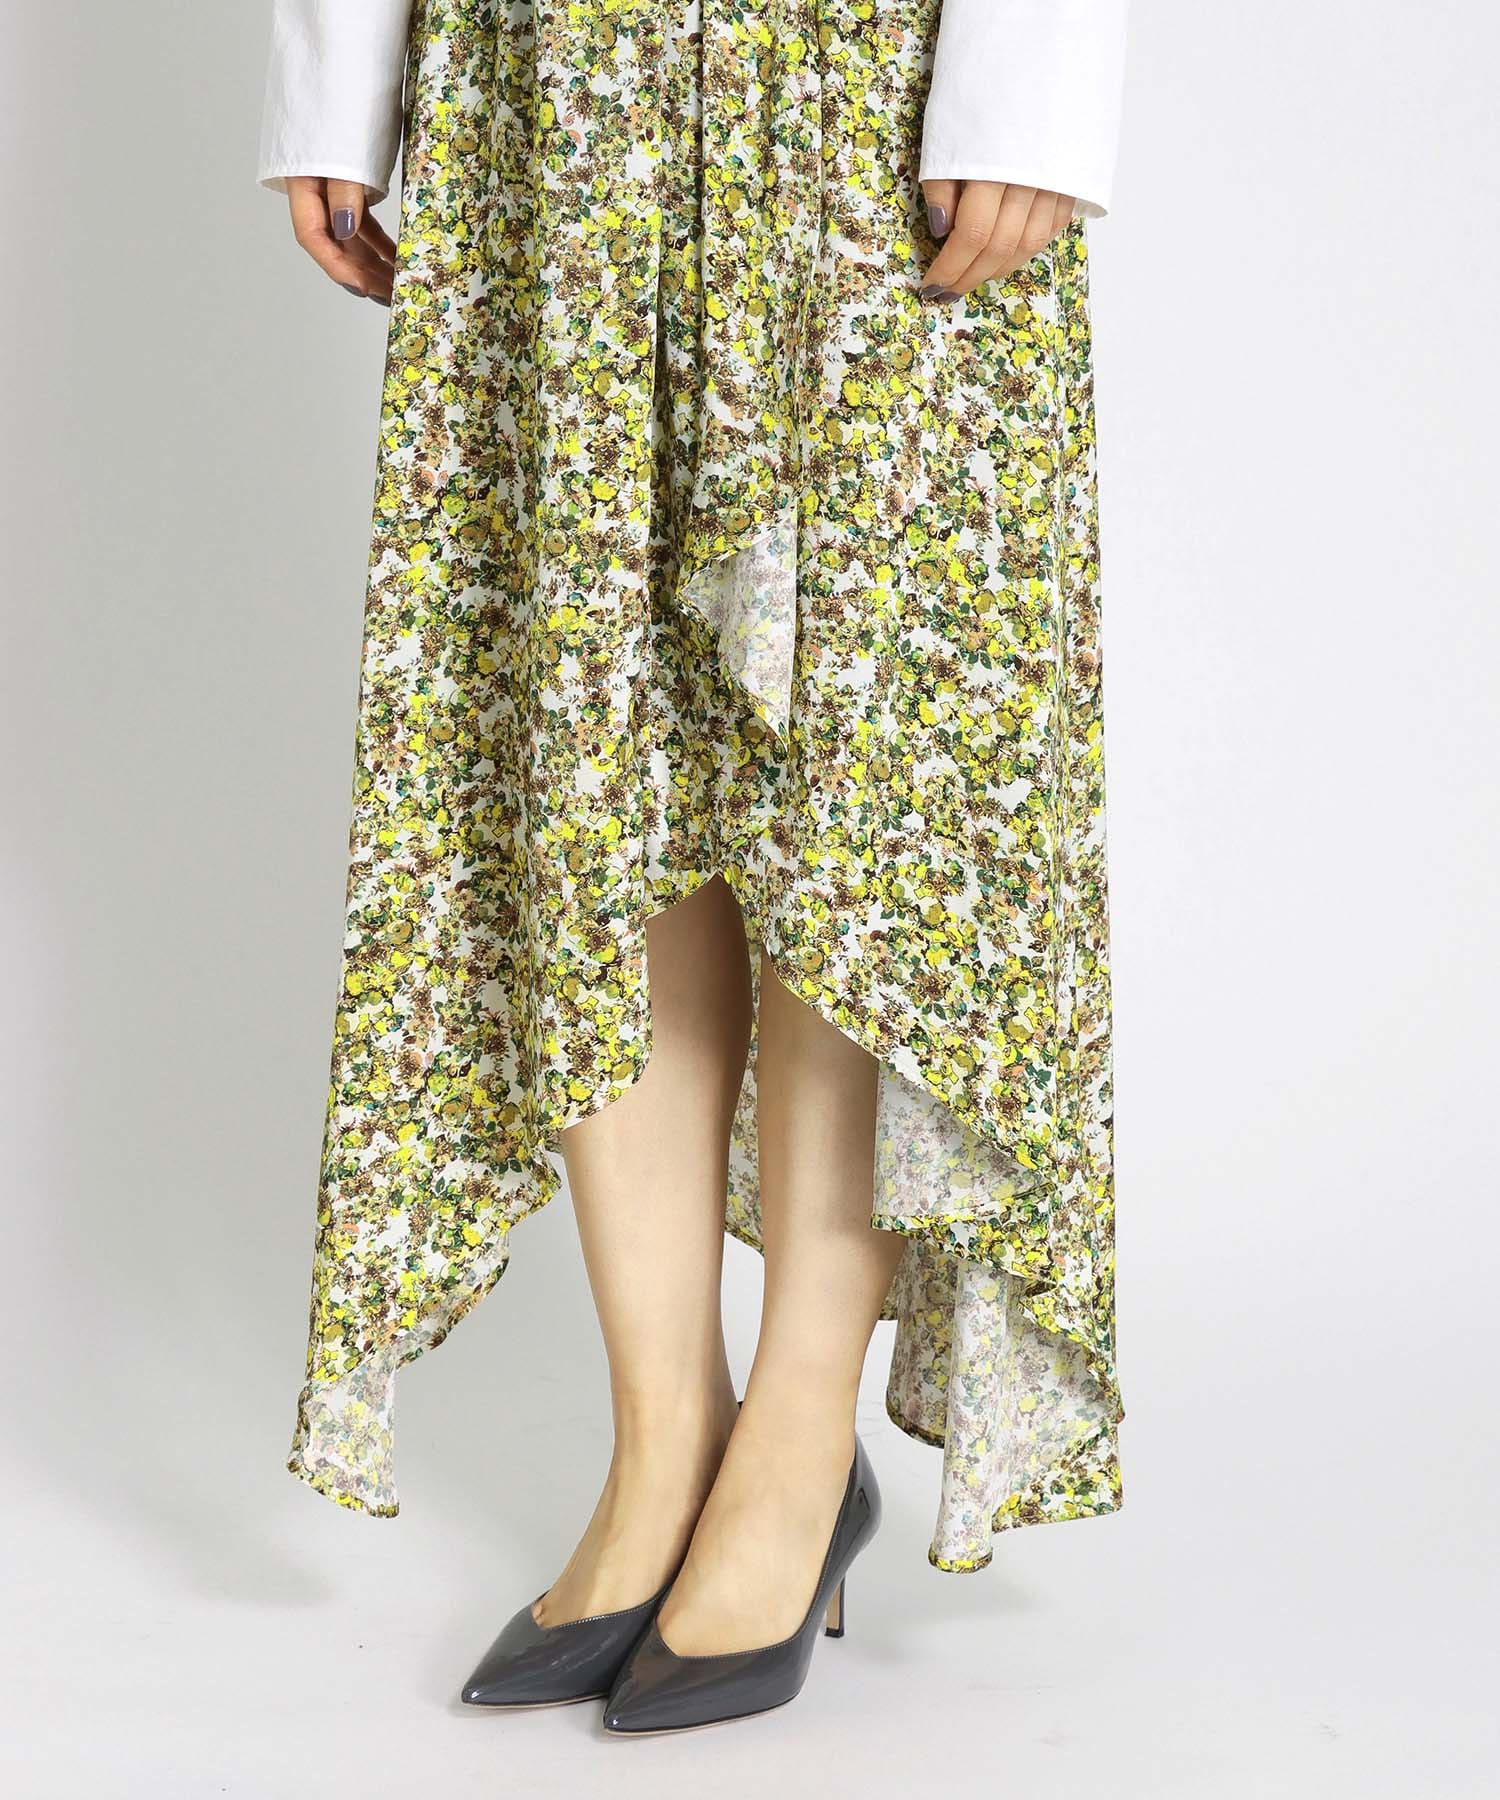 satin flower print feel up skirt